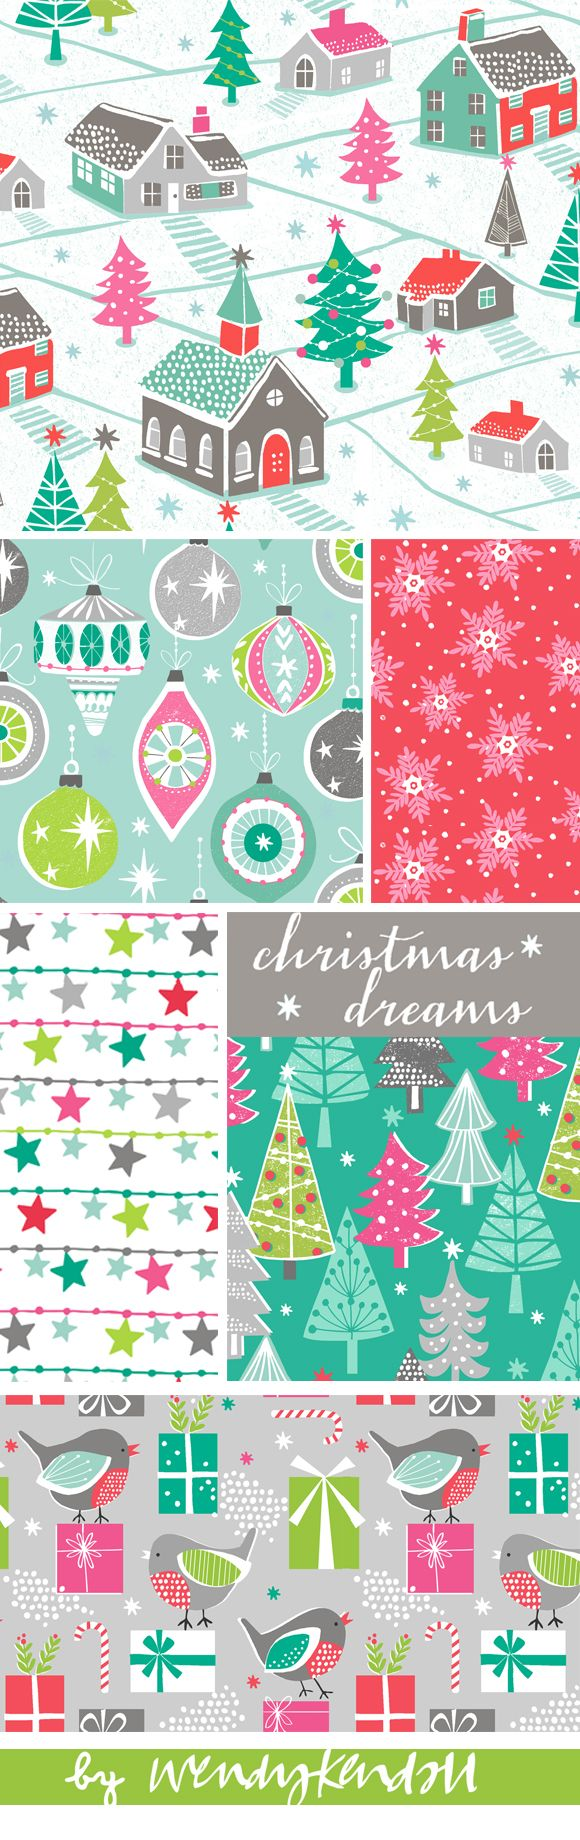 http://wendykendalldesigns.com/?projects=christmas-dreams